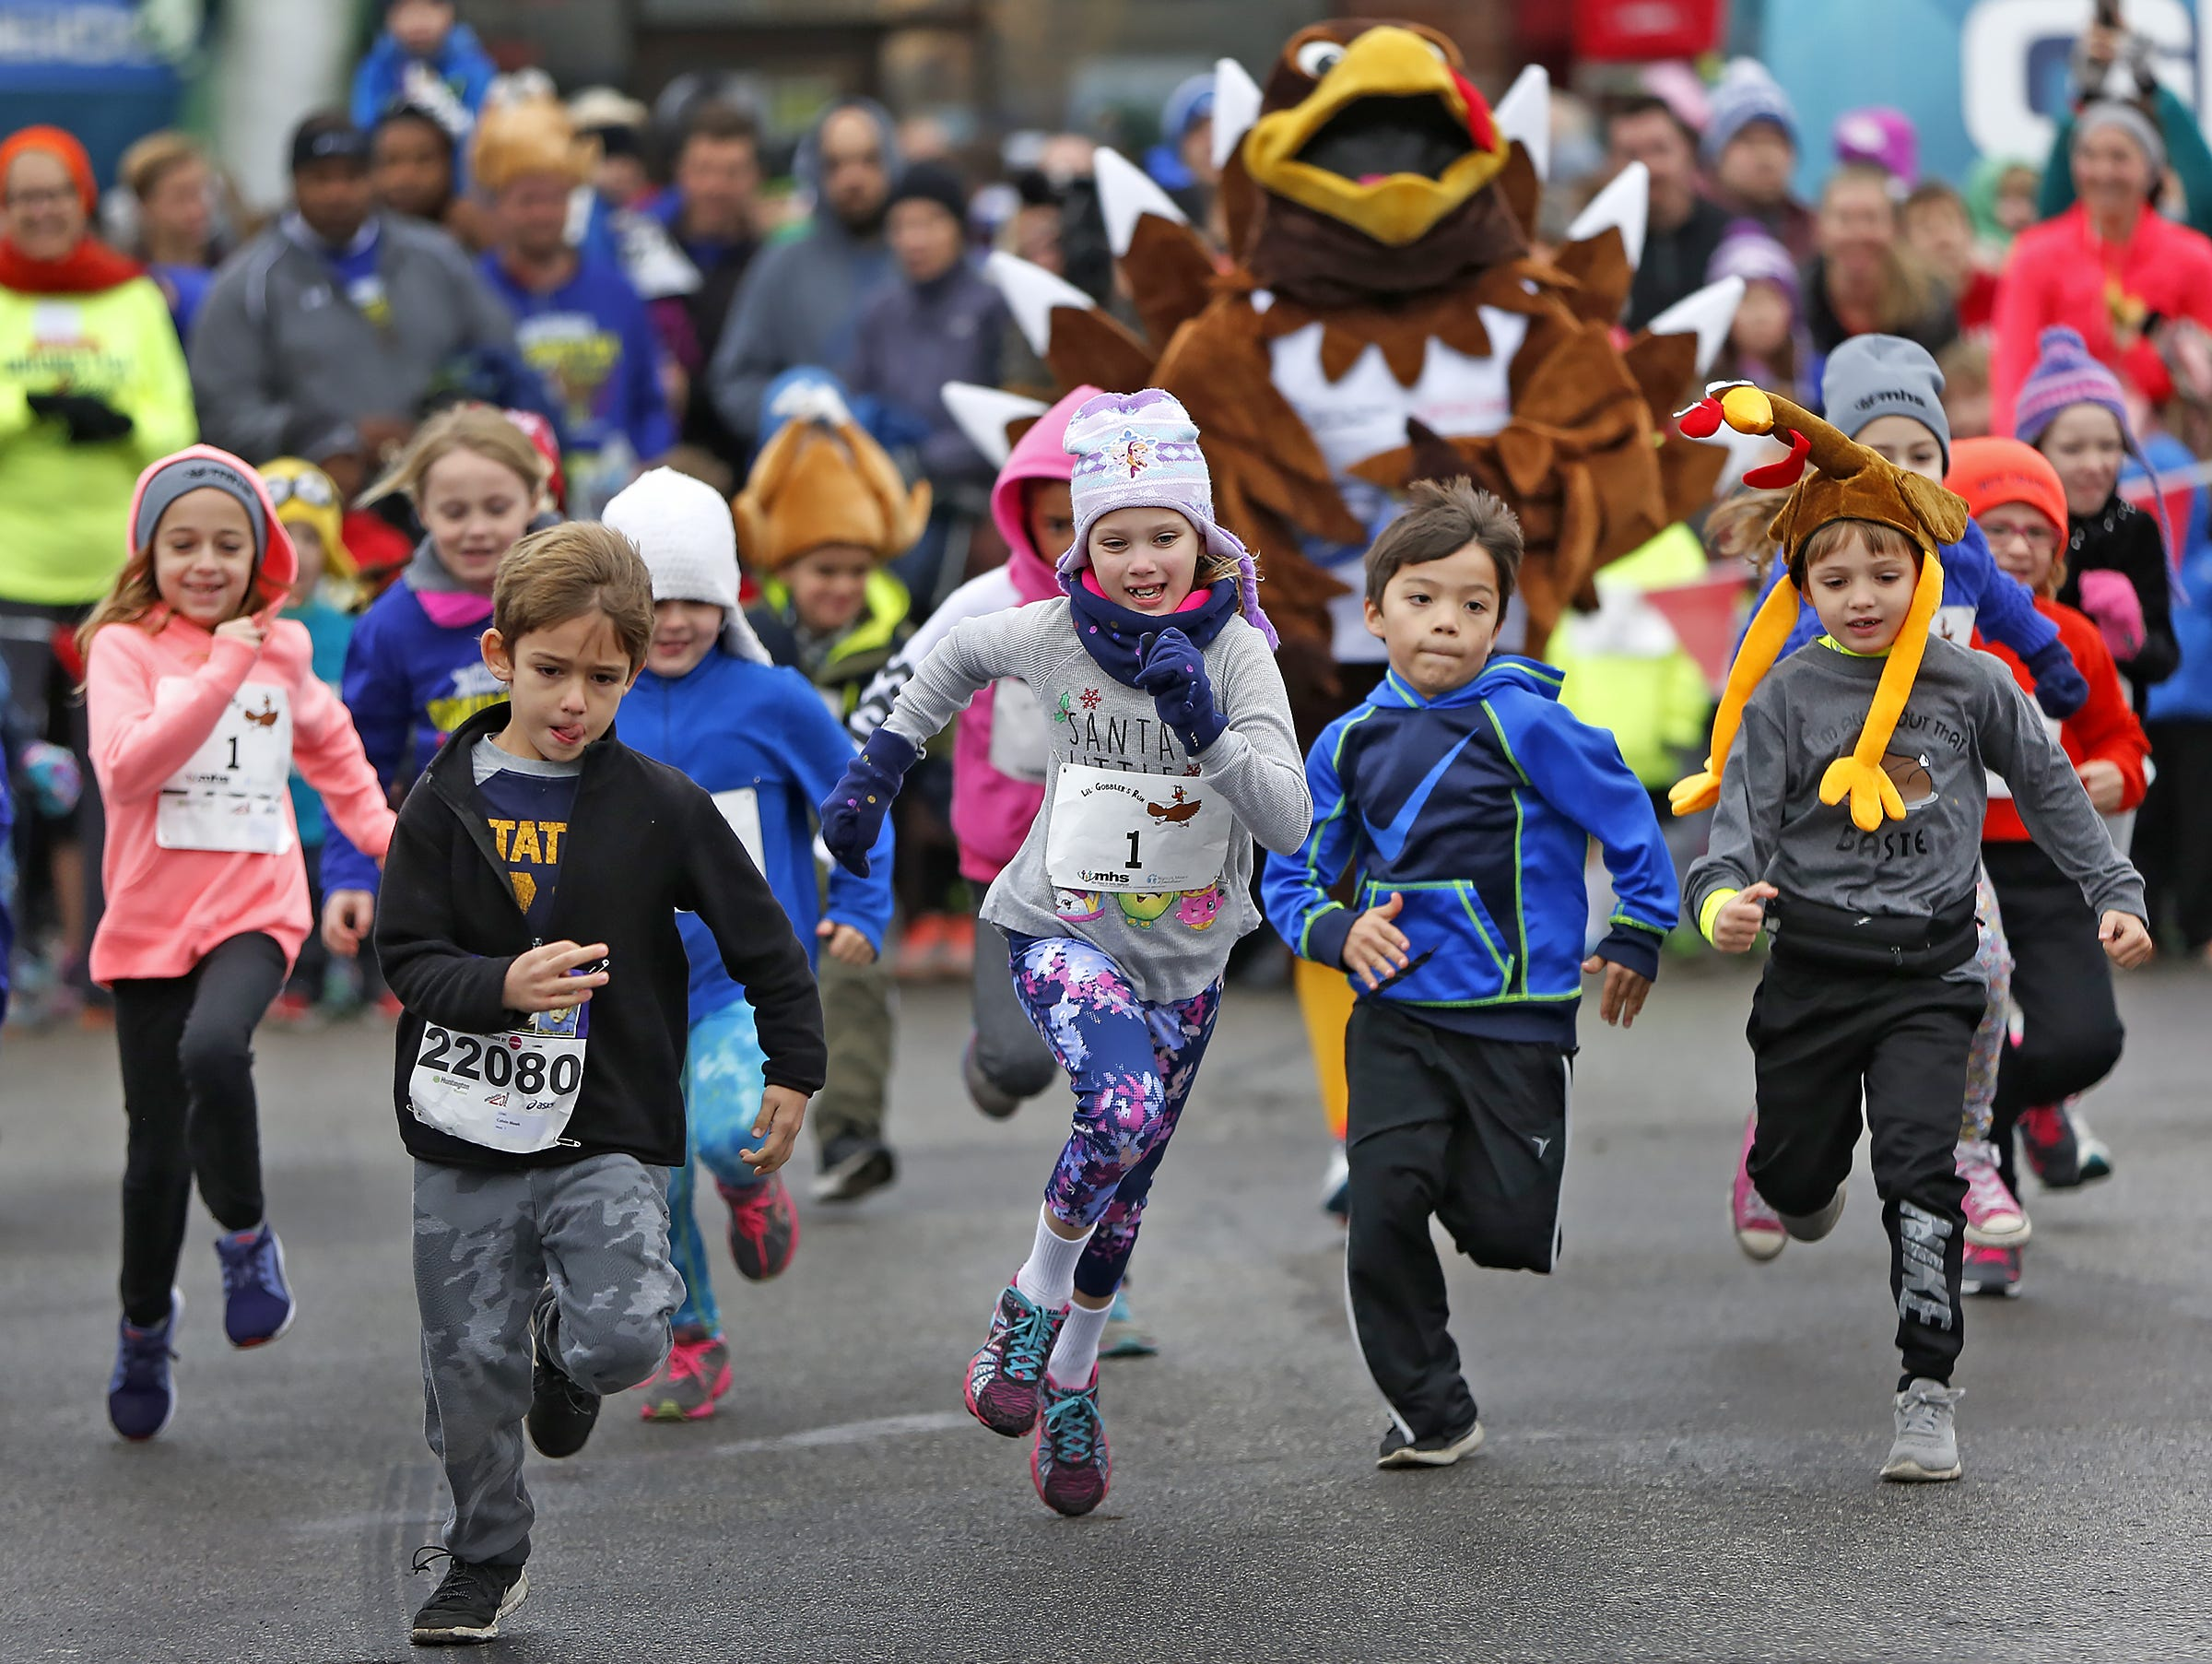 Enter to win two registrations for the Thanksgiving morning run through Broad Ripple. Enter 9/14-10/1